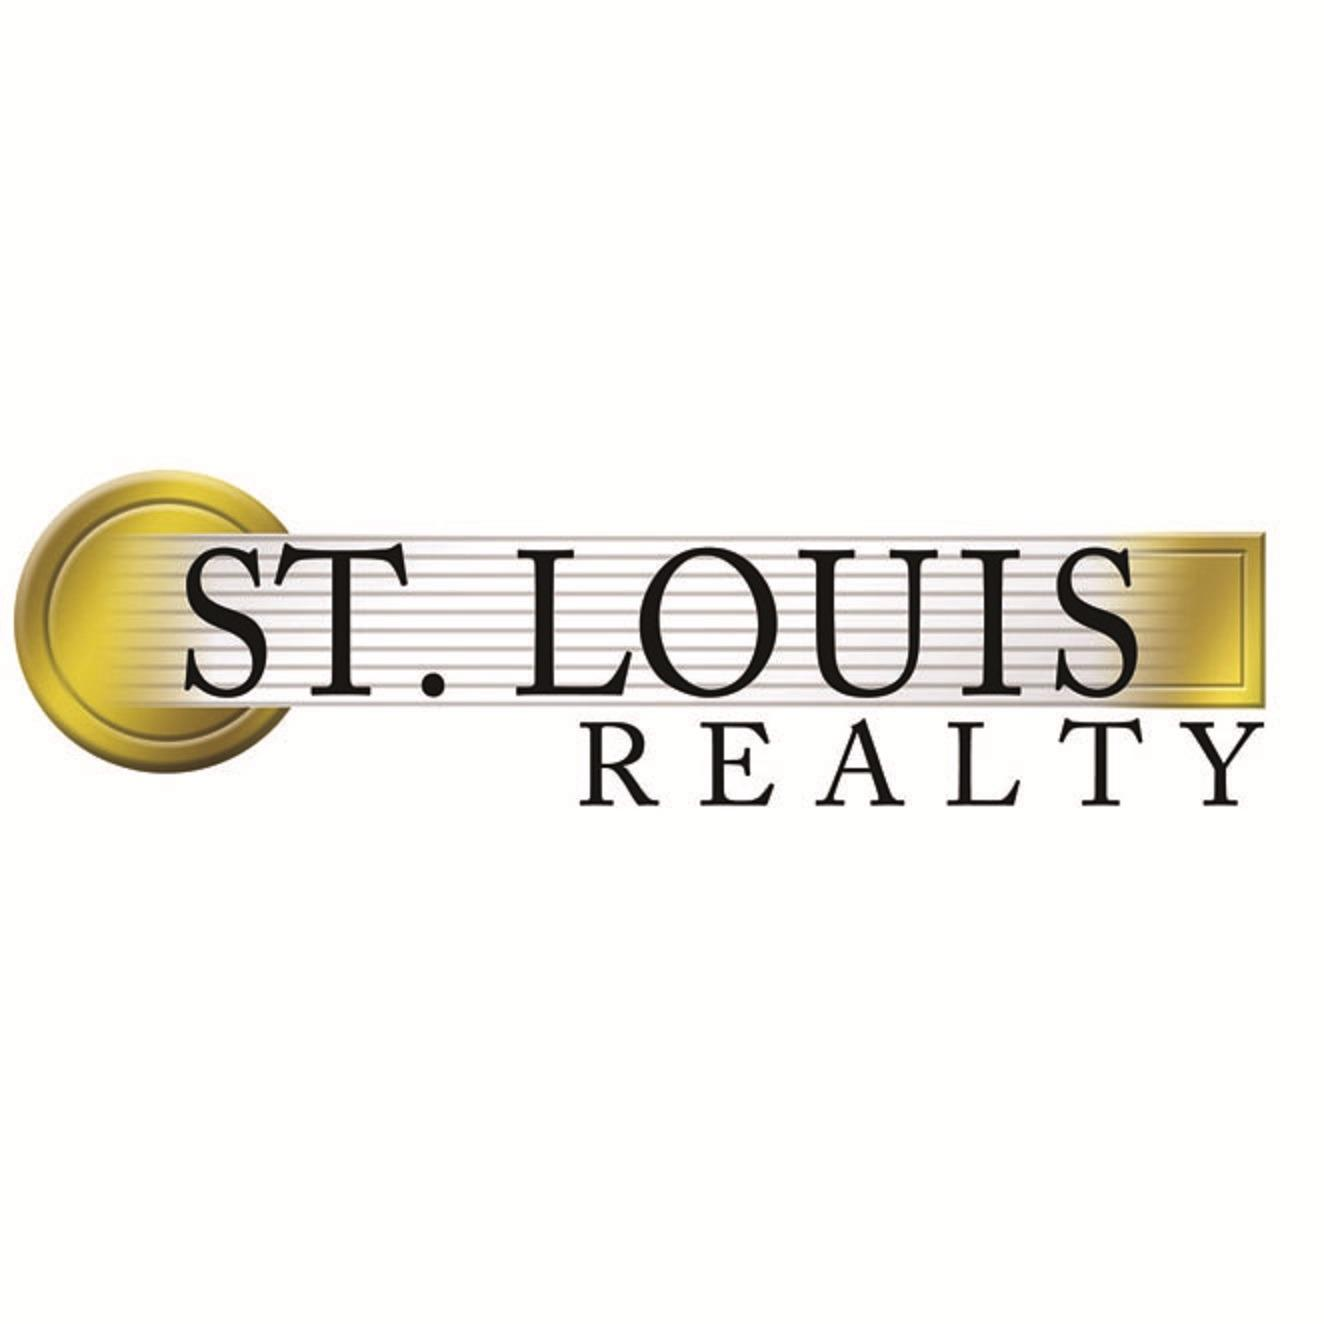 St. Louis Realty